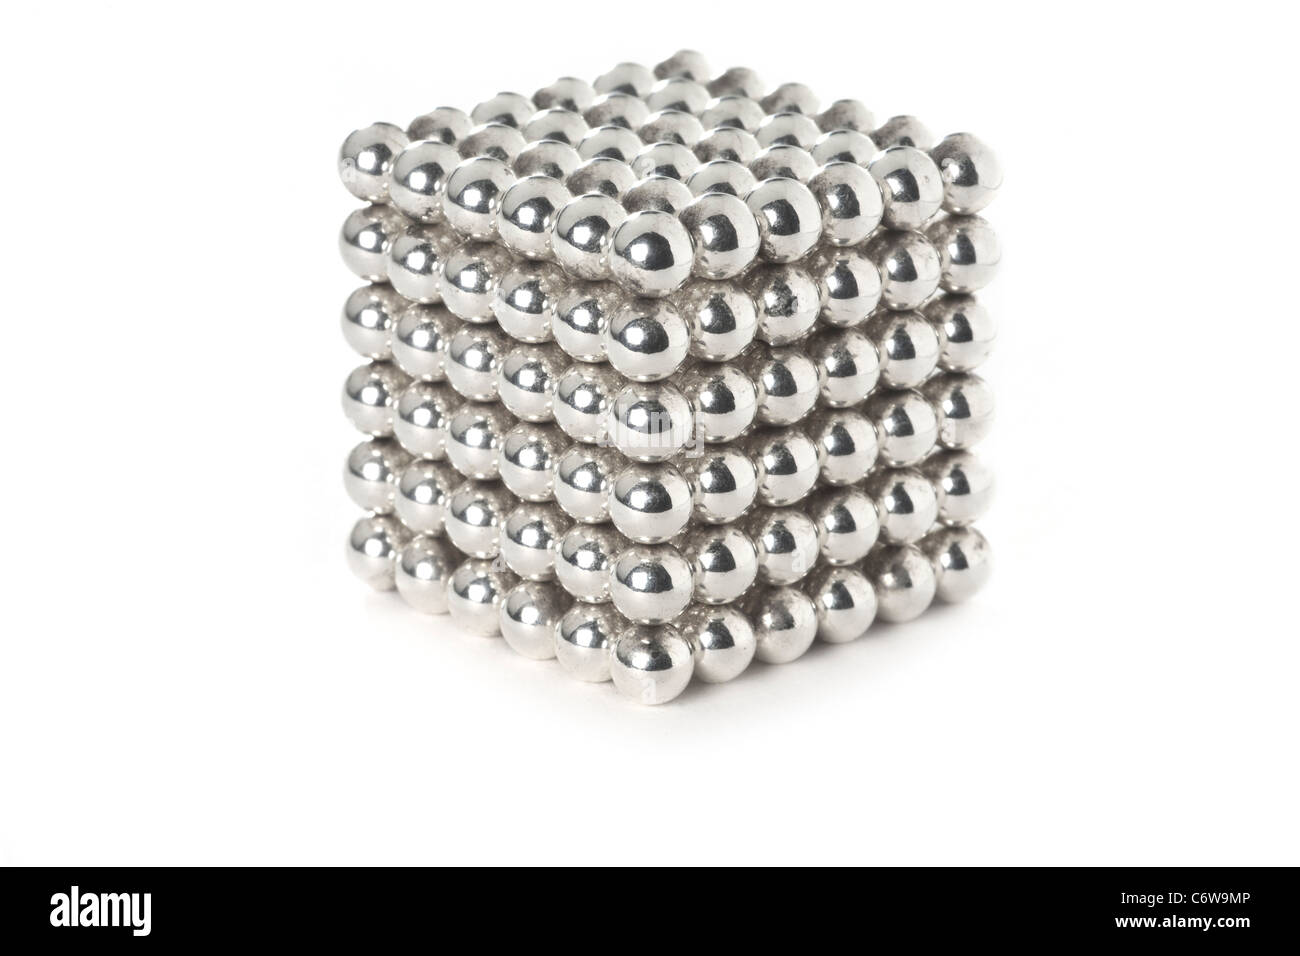 A shot in the studio of a stacked up steel ball cube.  Billes d'acier empilées pour former un cube. Prise - Stock Image